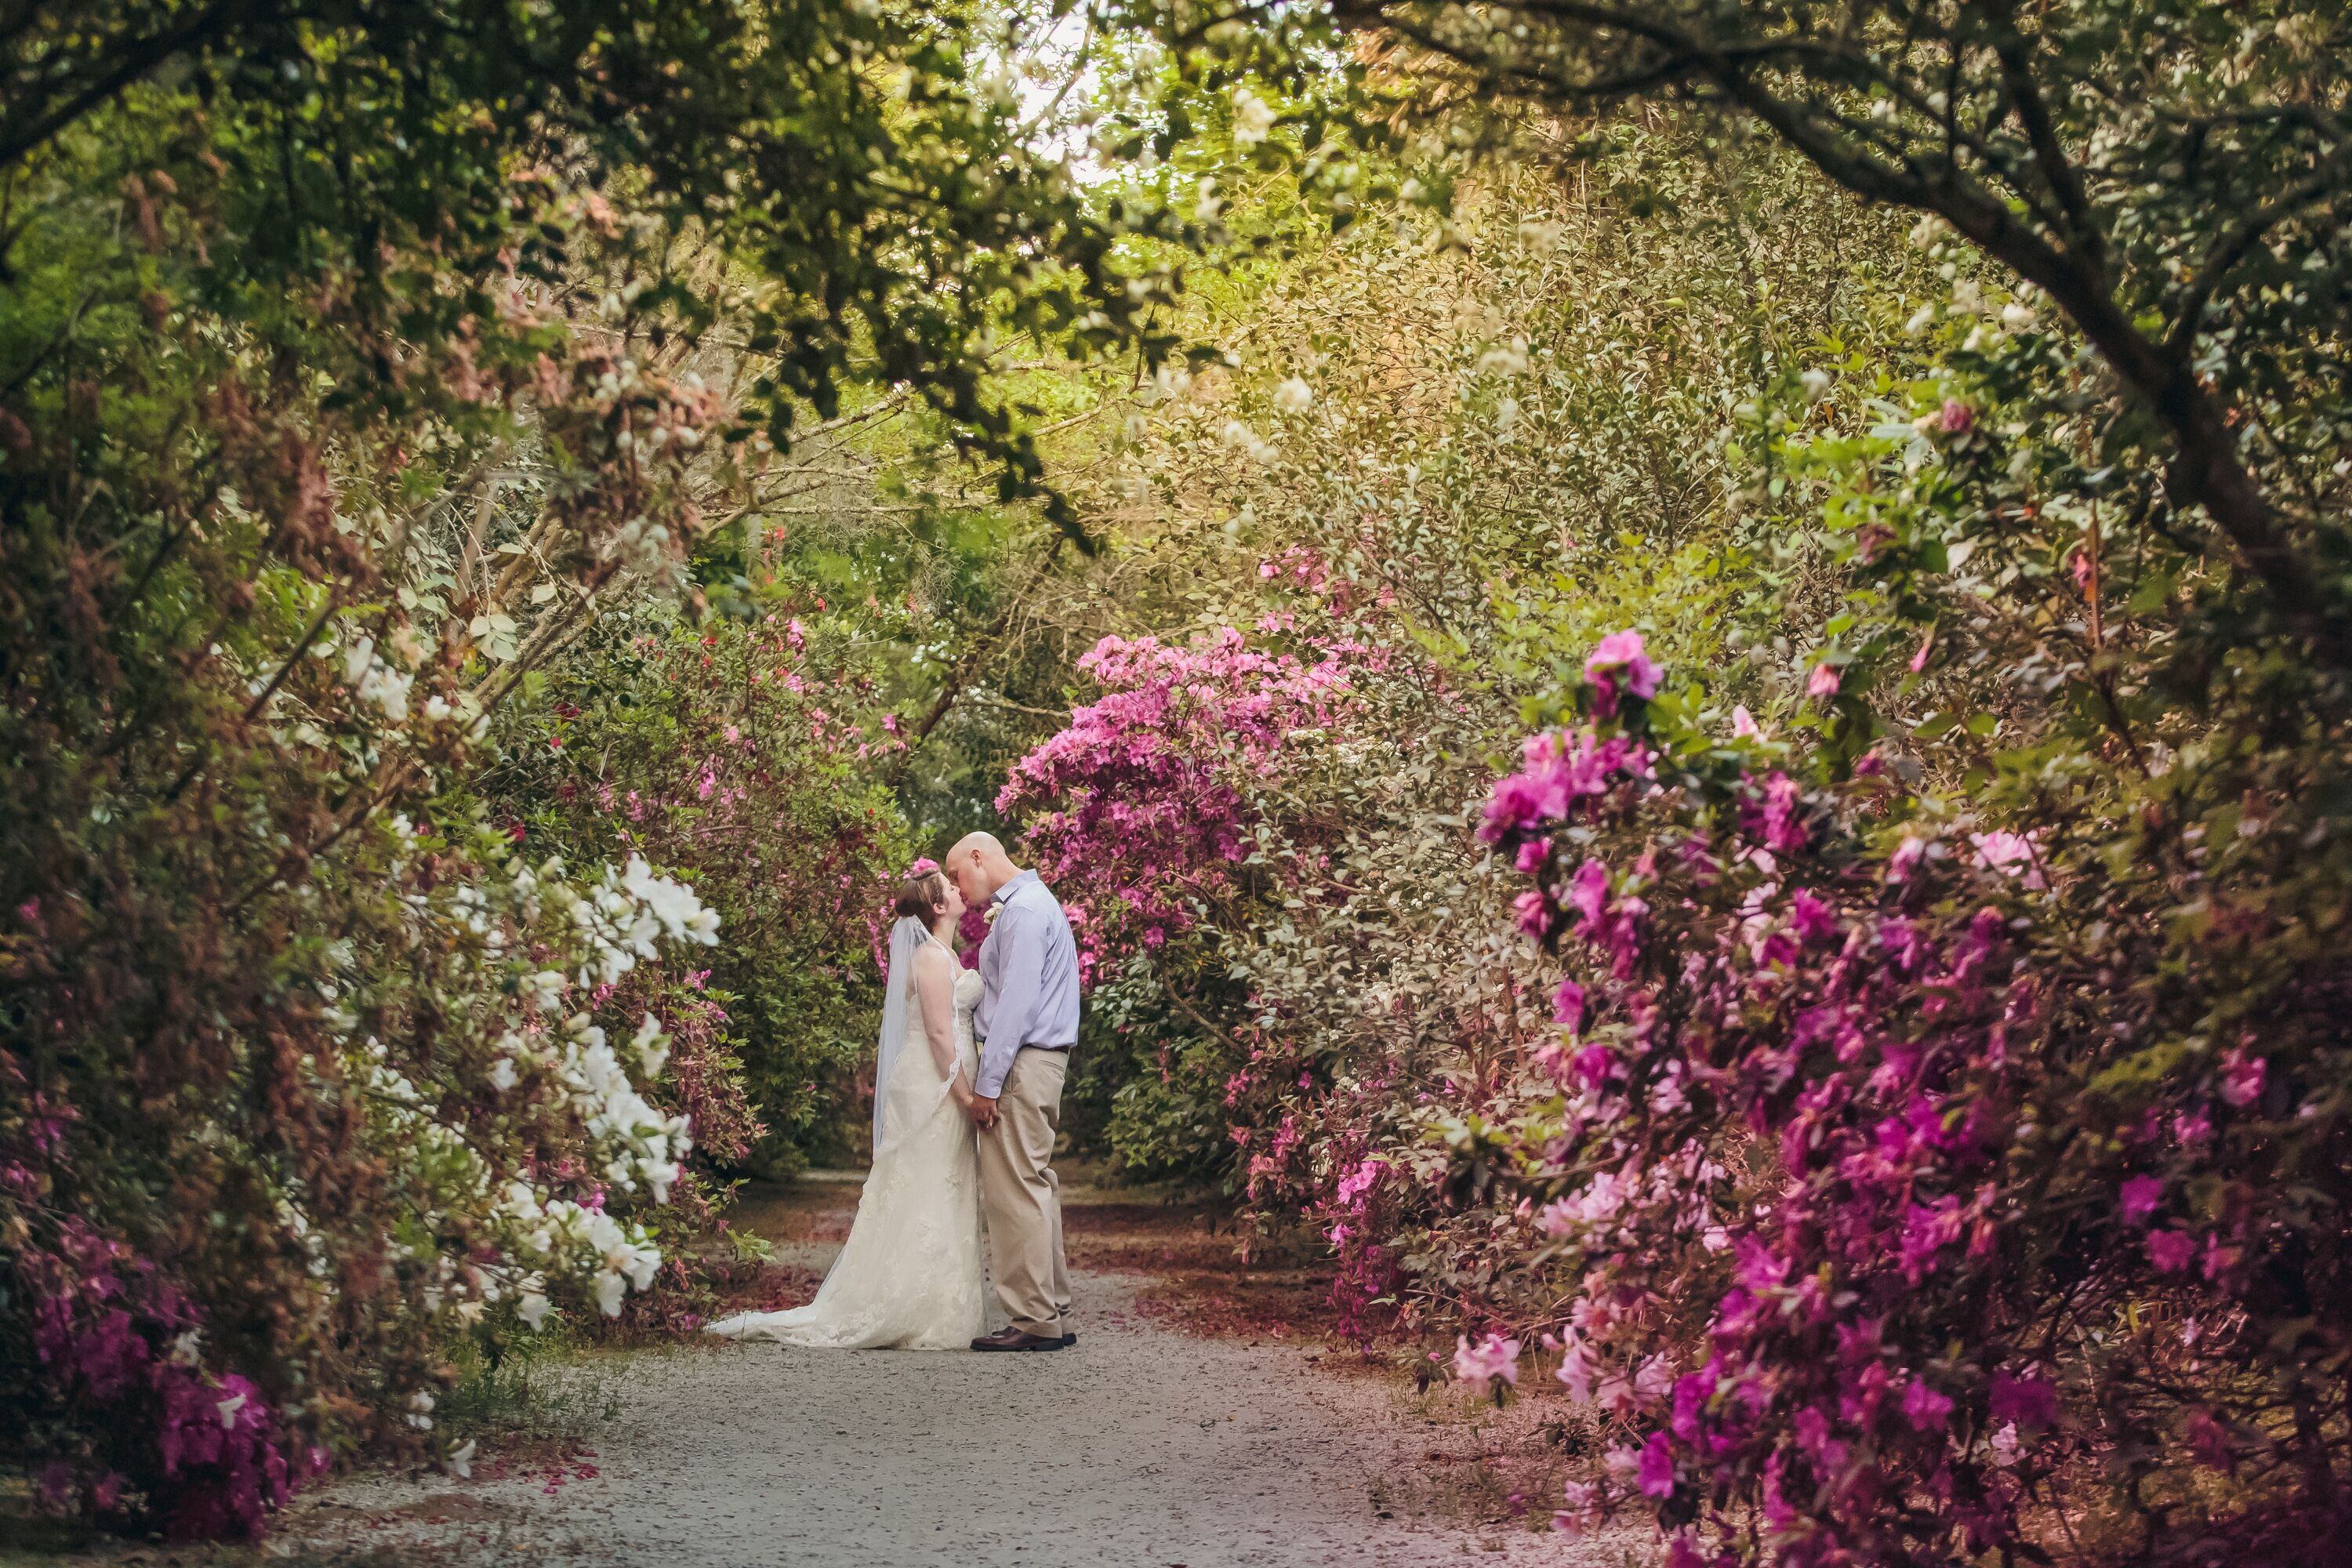 A simple ivory wedding at magnolia plantation and gardens in charleston south carolina for Magnolia gardens charleston sc